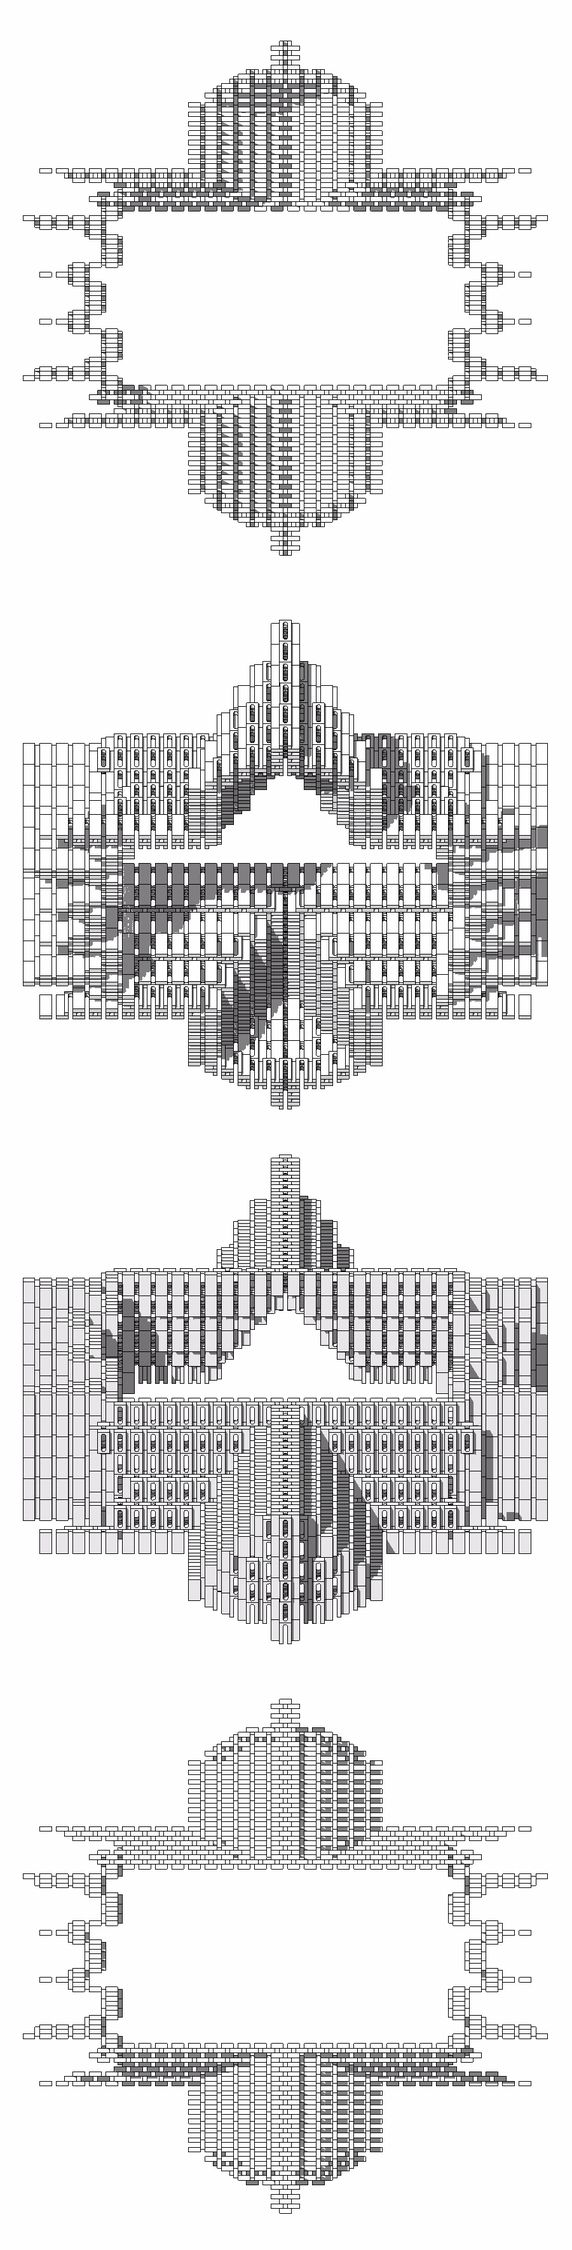 Formation Apse - charles_3_1416 | ello